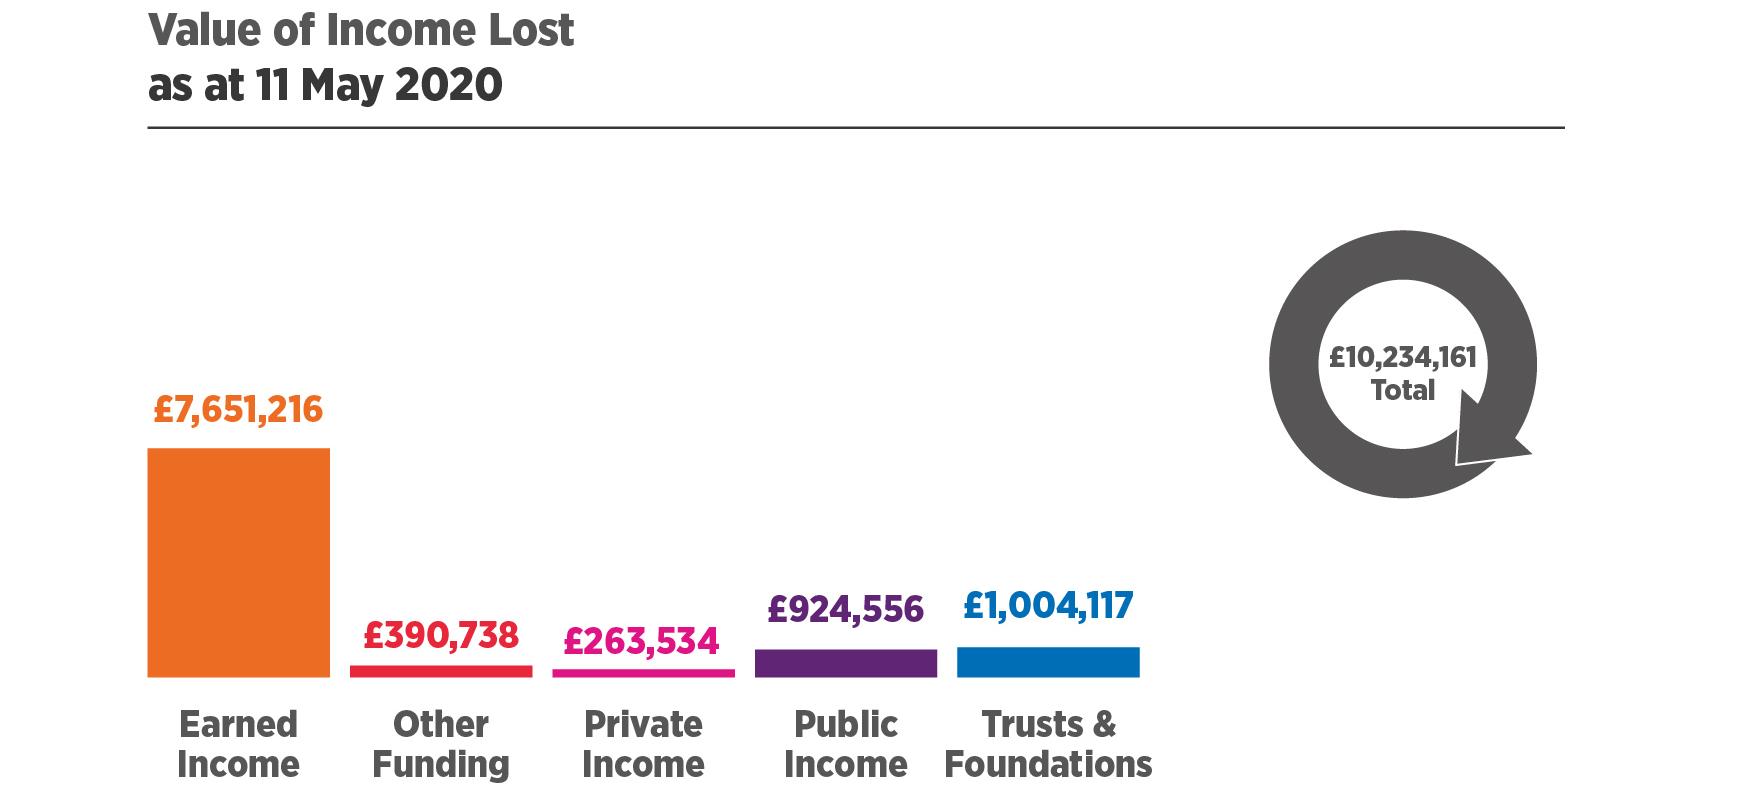 Value of Income Lost as at 11 May 2020. Earned Income = £7,651,216, Other Funding = £390,738, Private Income = £263,534, Public Income = £924,556, Trusts & Foundstions = £1,004,117. £10,234,161 Total